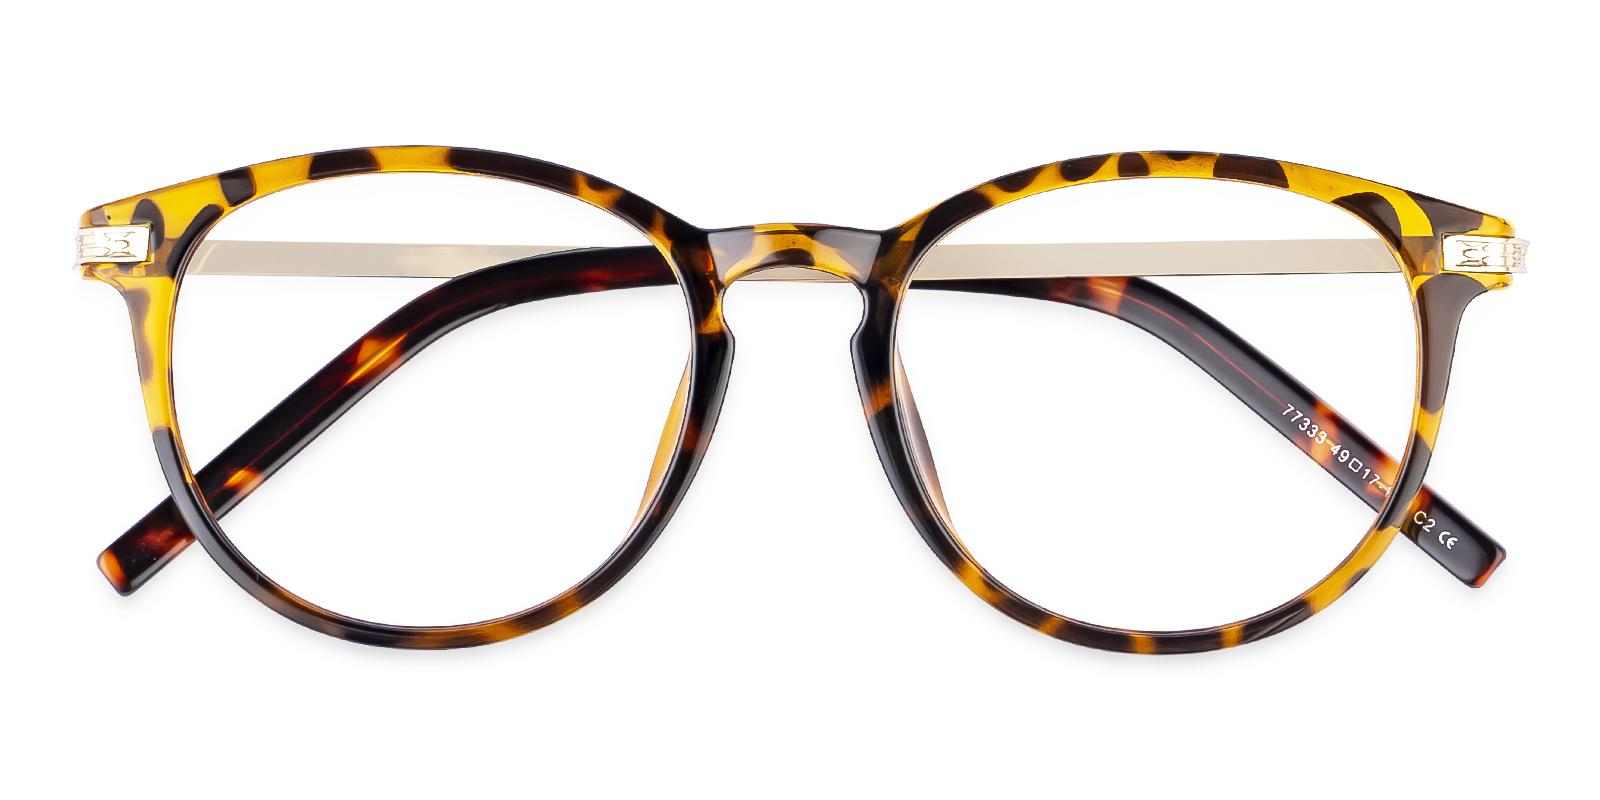 Callie Tortoise Combination UniversalBridgeFit , Eyeglasses Frames from ABBE Glasses